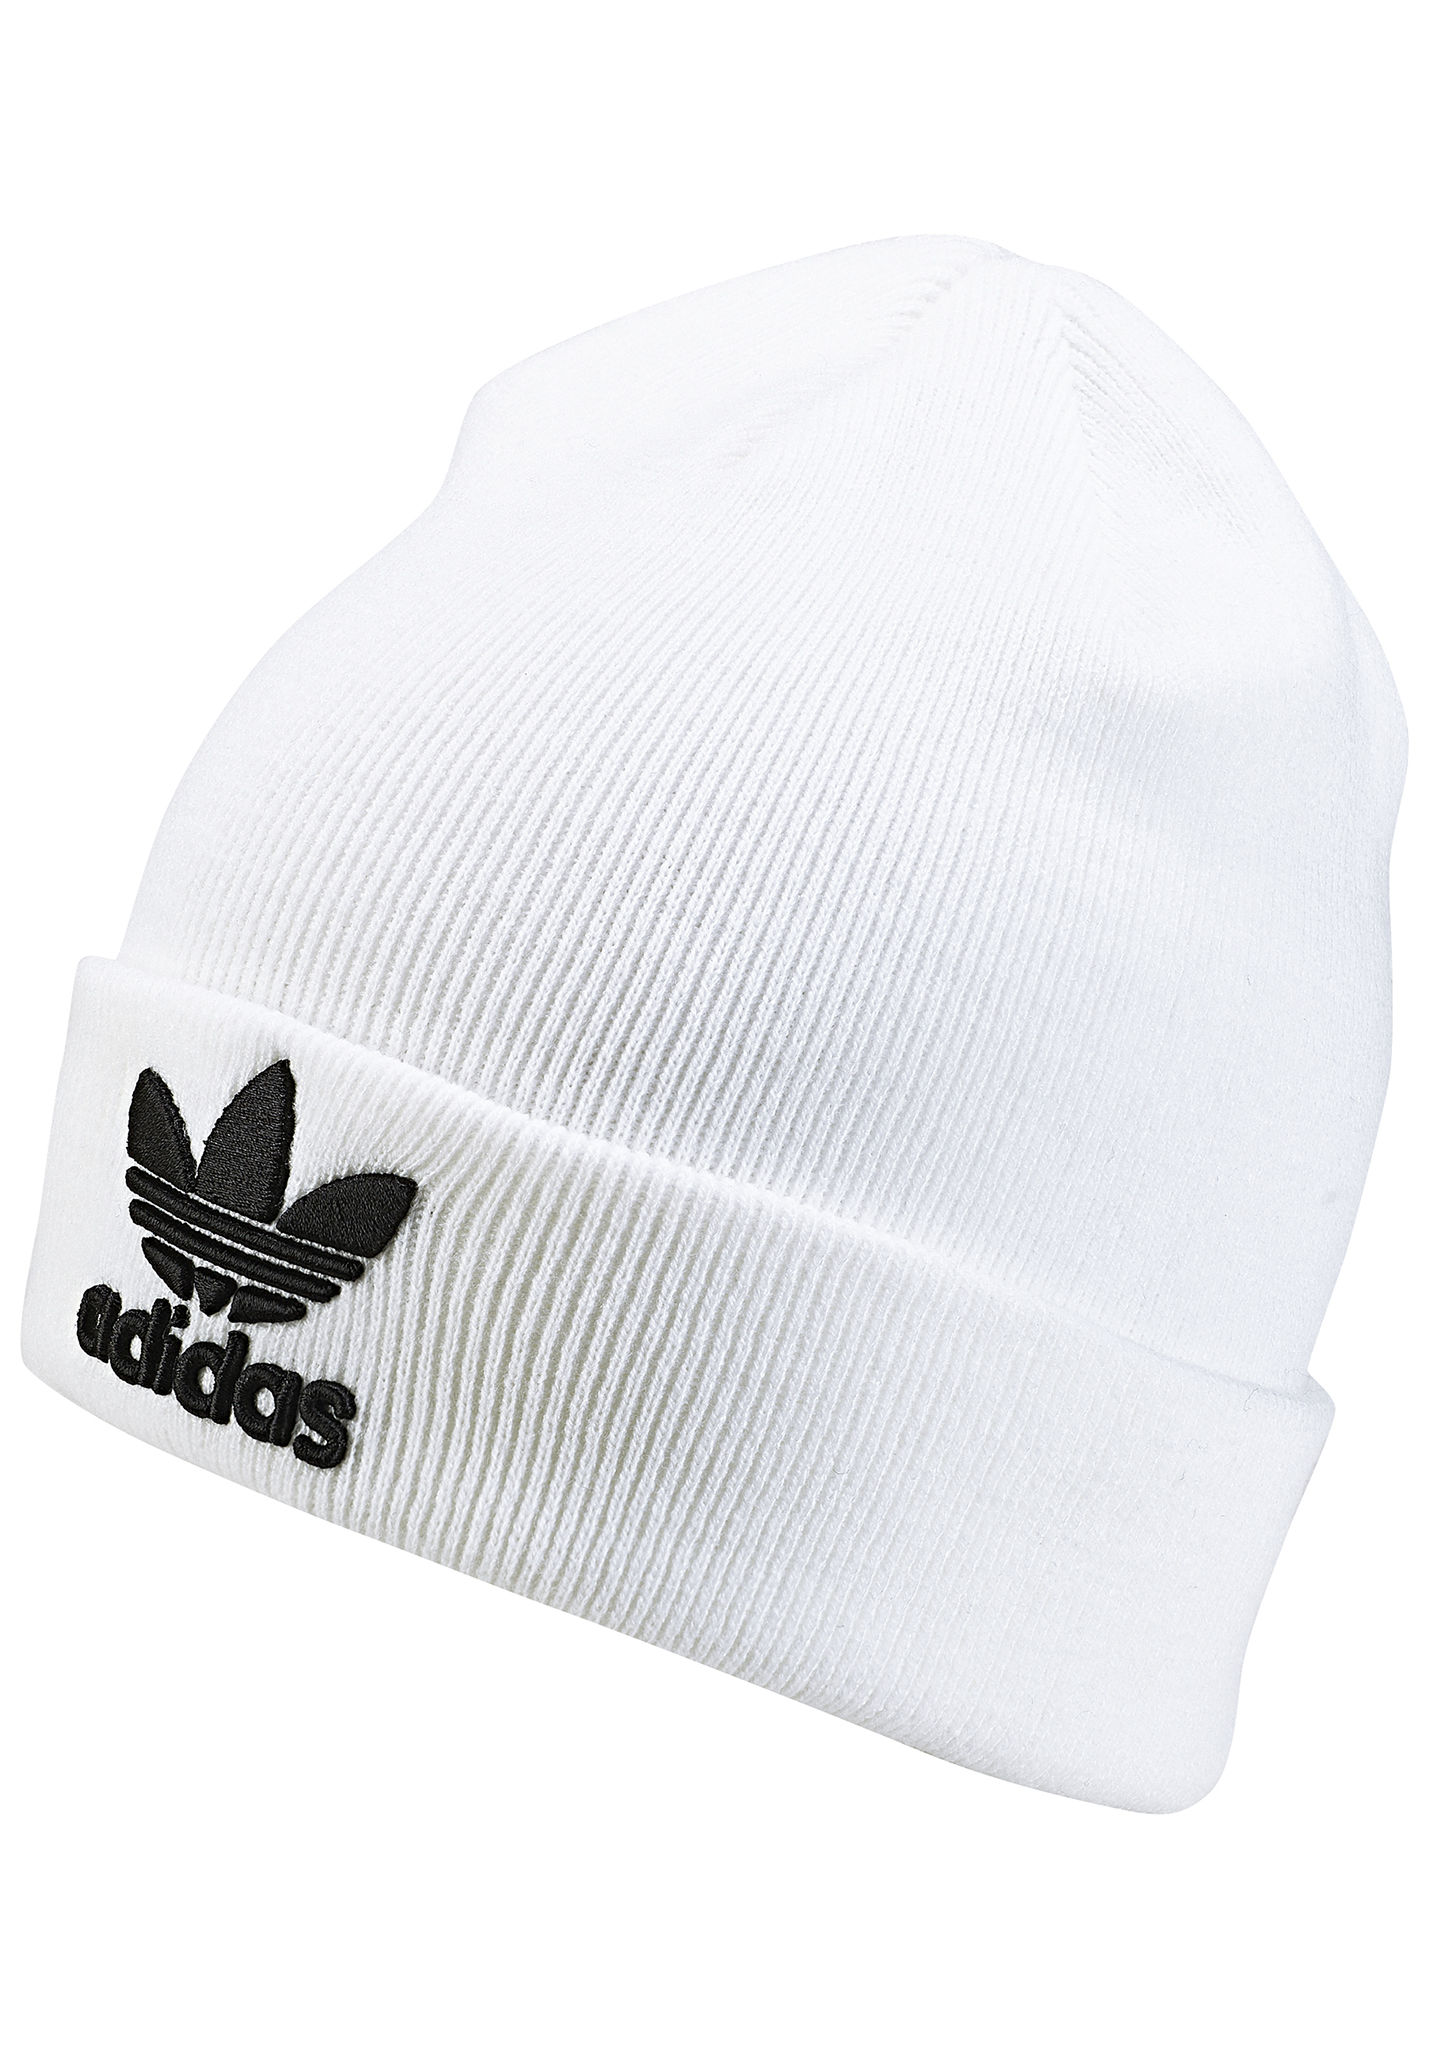 19128e1c0cc18 ADIDAS ORIGINALS Trefoil - Beanie - White - Planet Sports